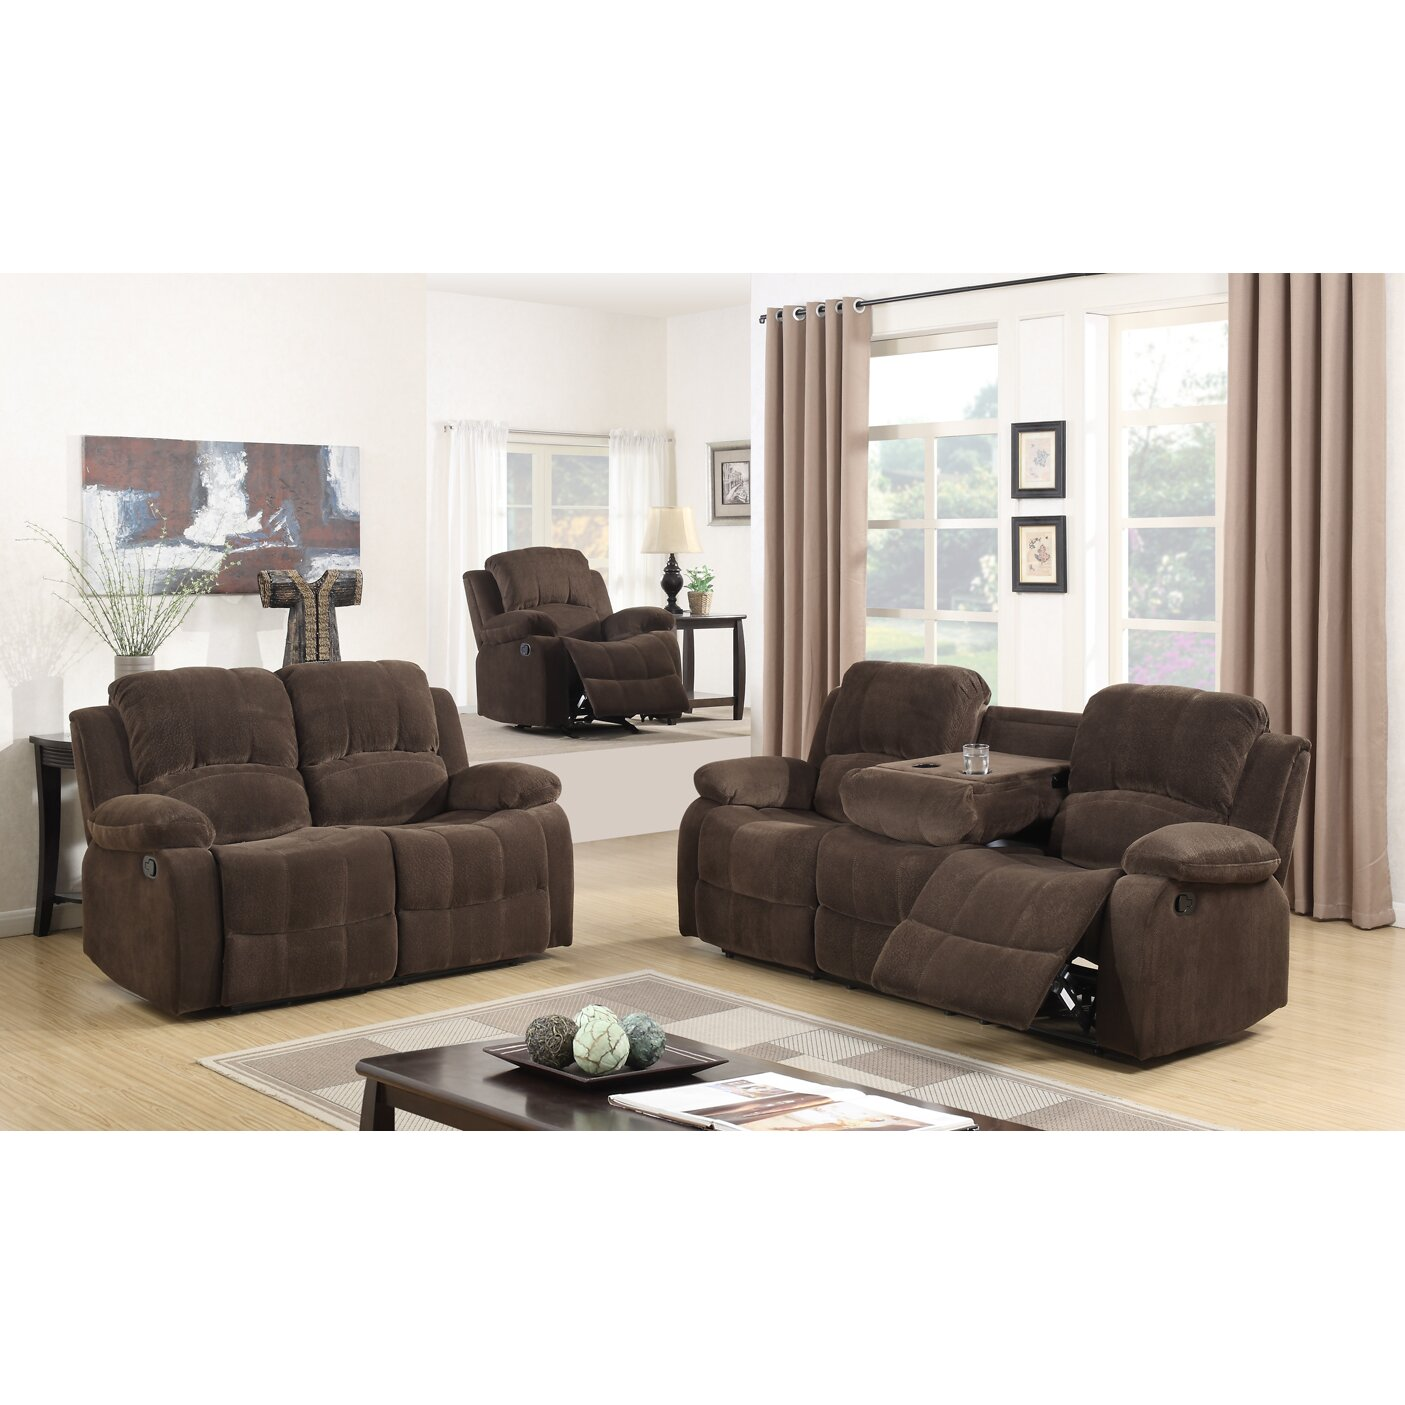 Best quality furniture fabric 3 piece recliner living room for Best living room couches